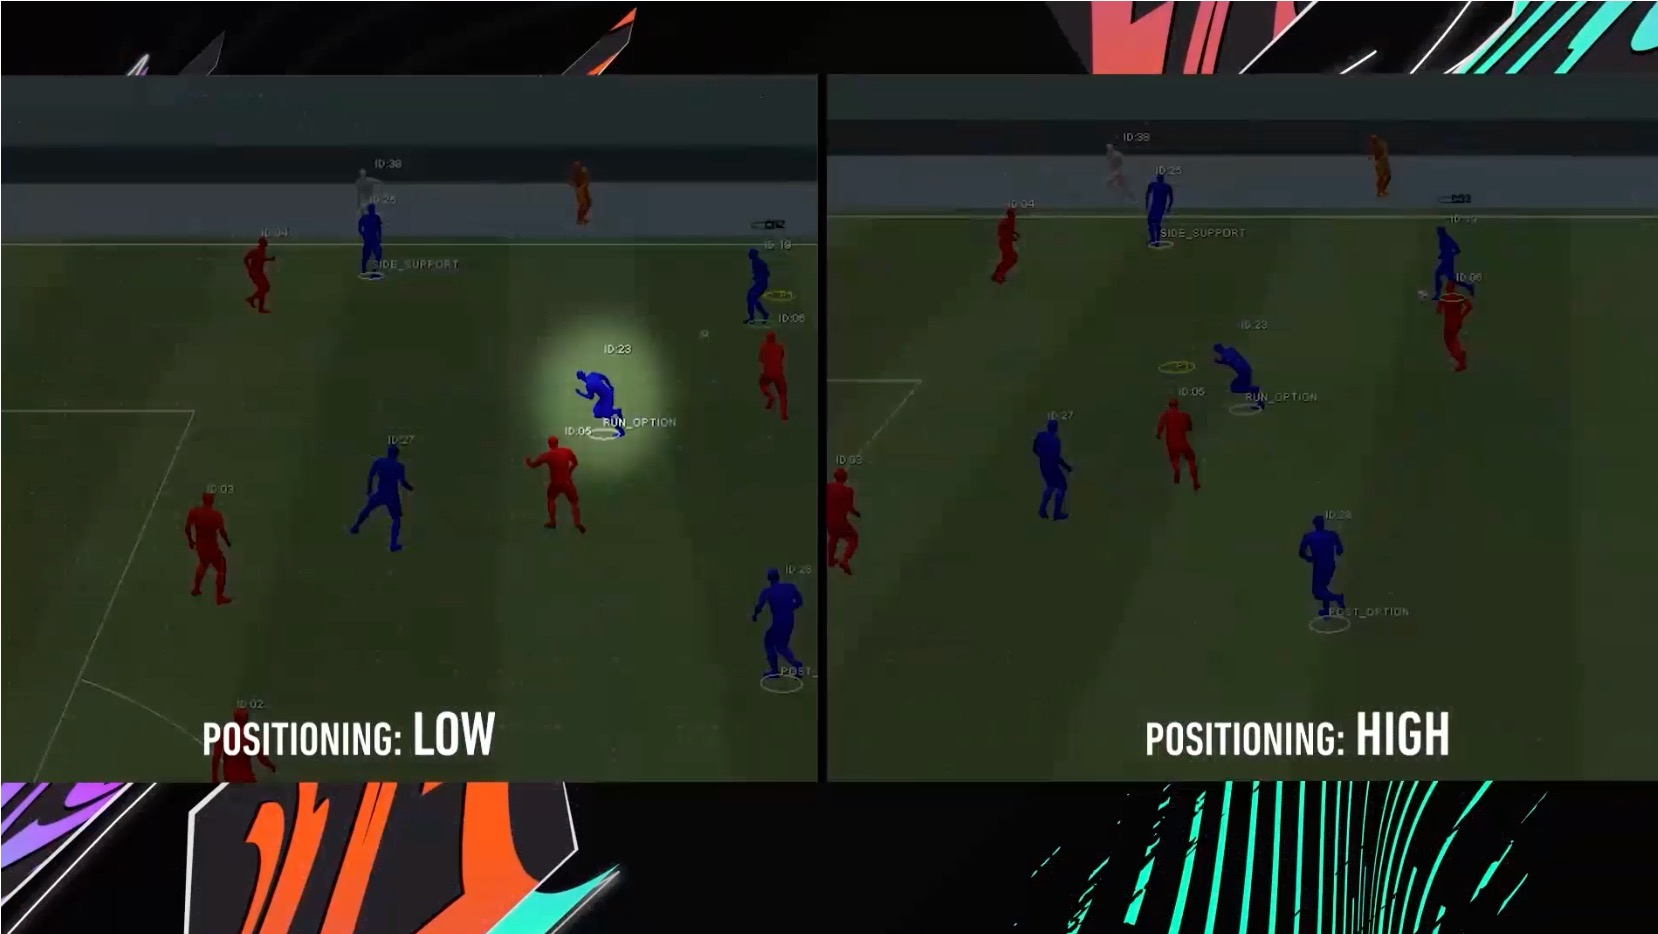 FIFA 21 player positioning